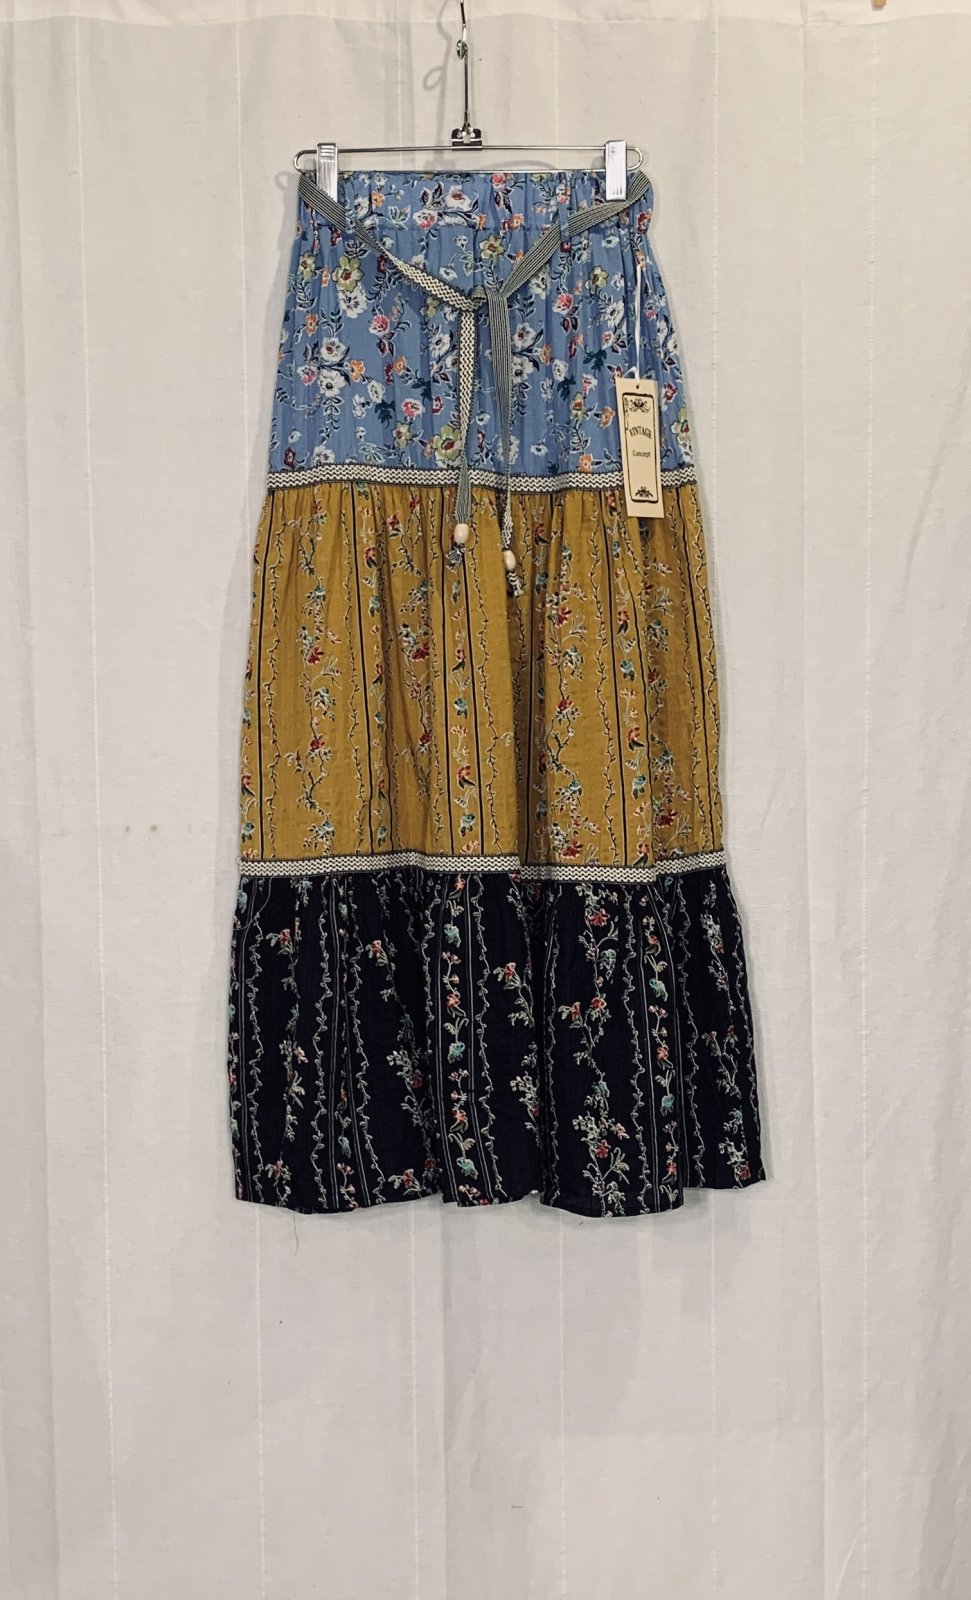 VC Tiered Skirt